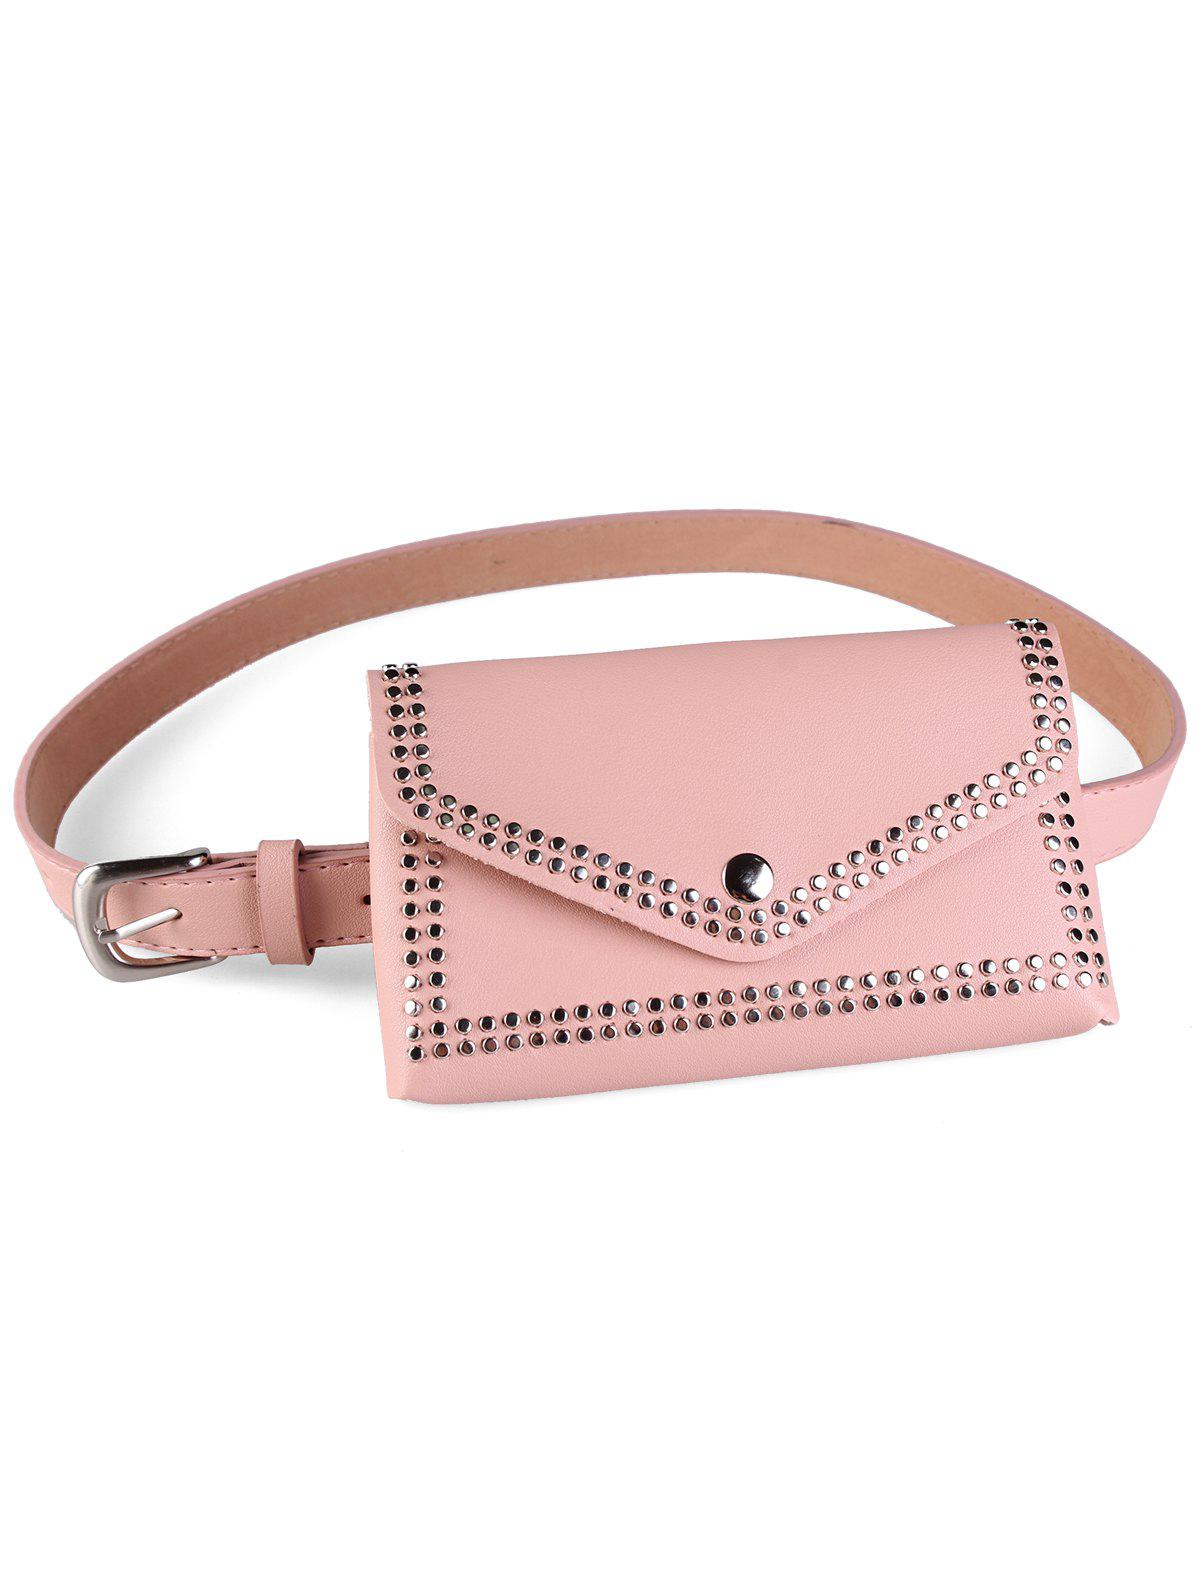 Rivet Fanny Pack Embellished Faux Leather Belt Bag - PINK